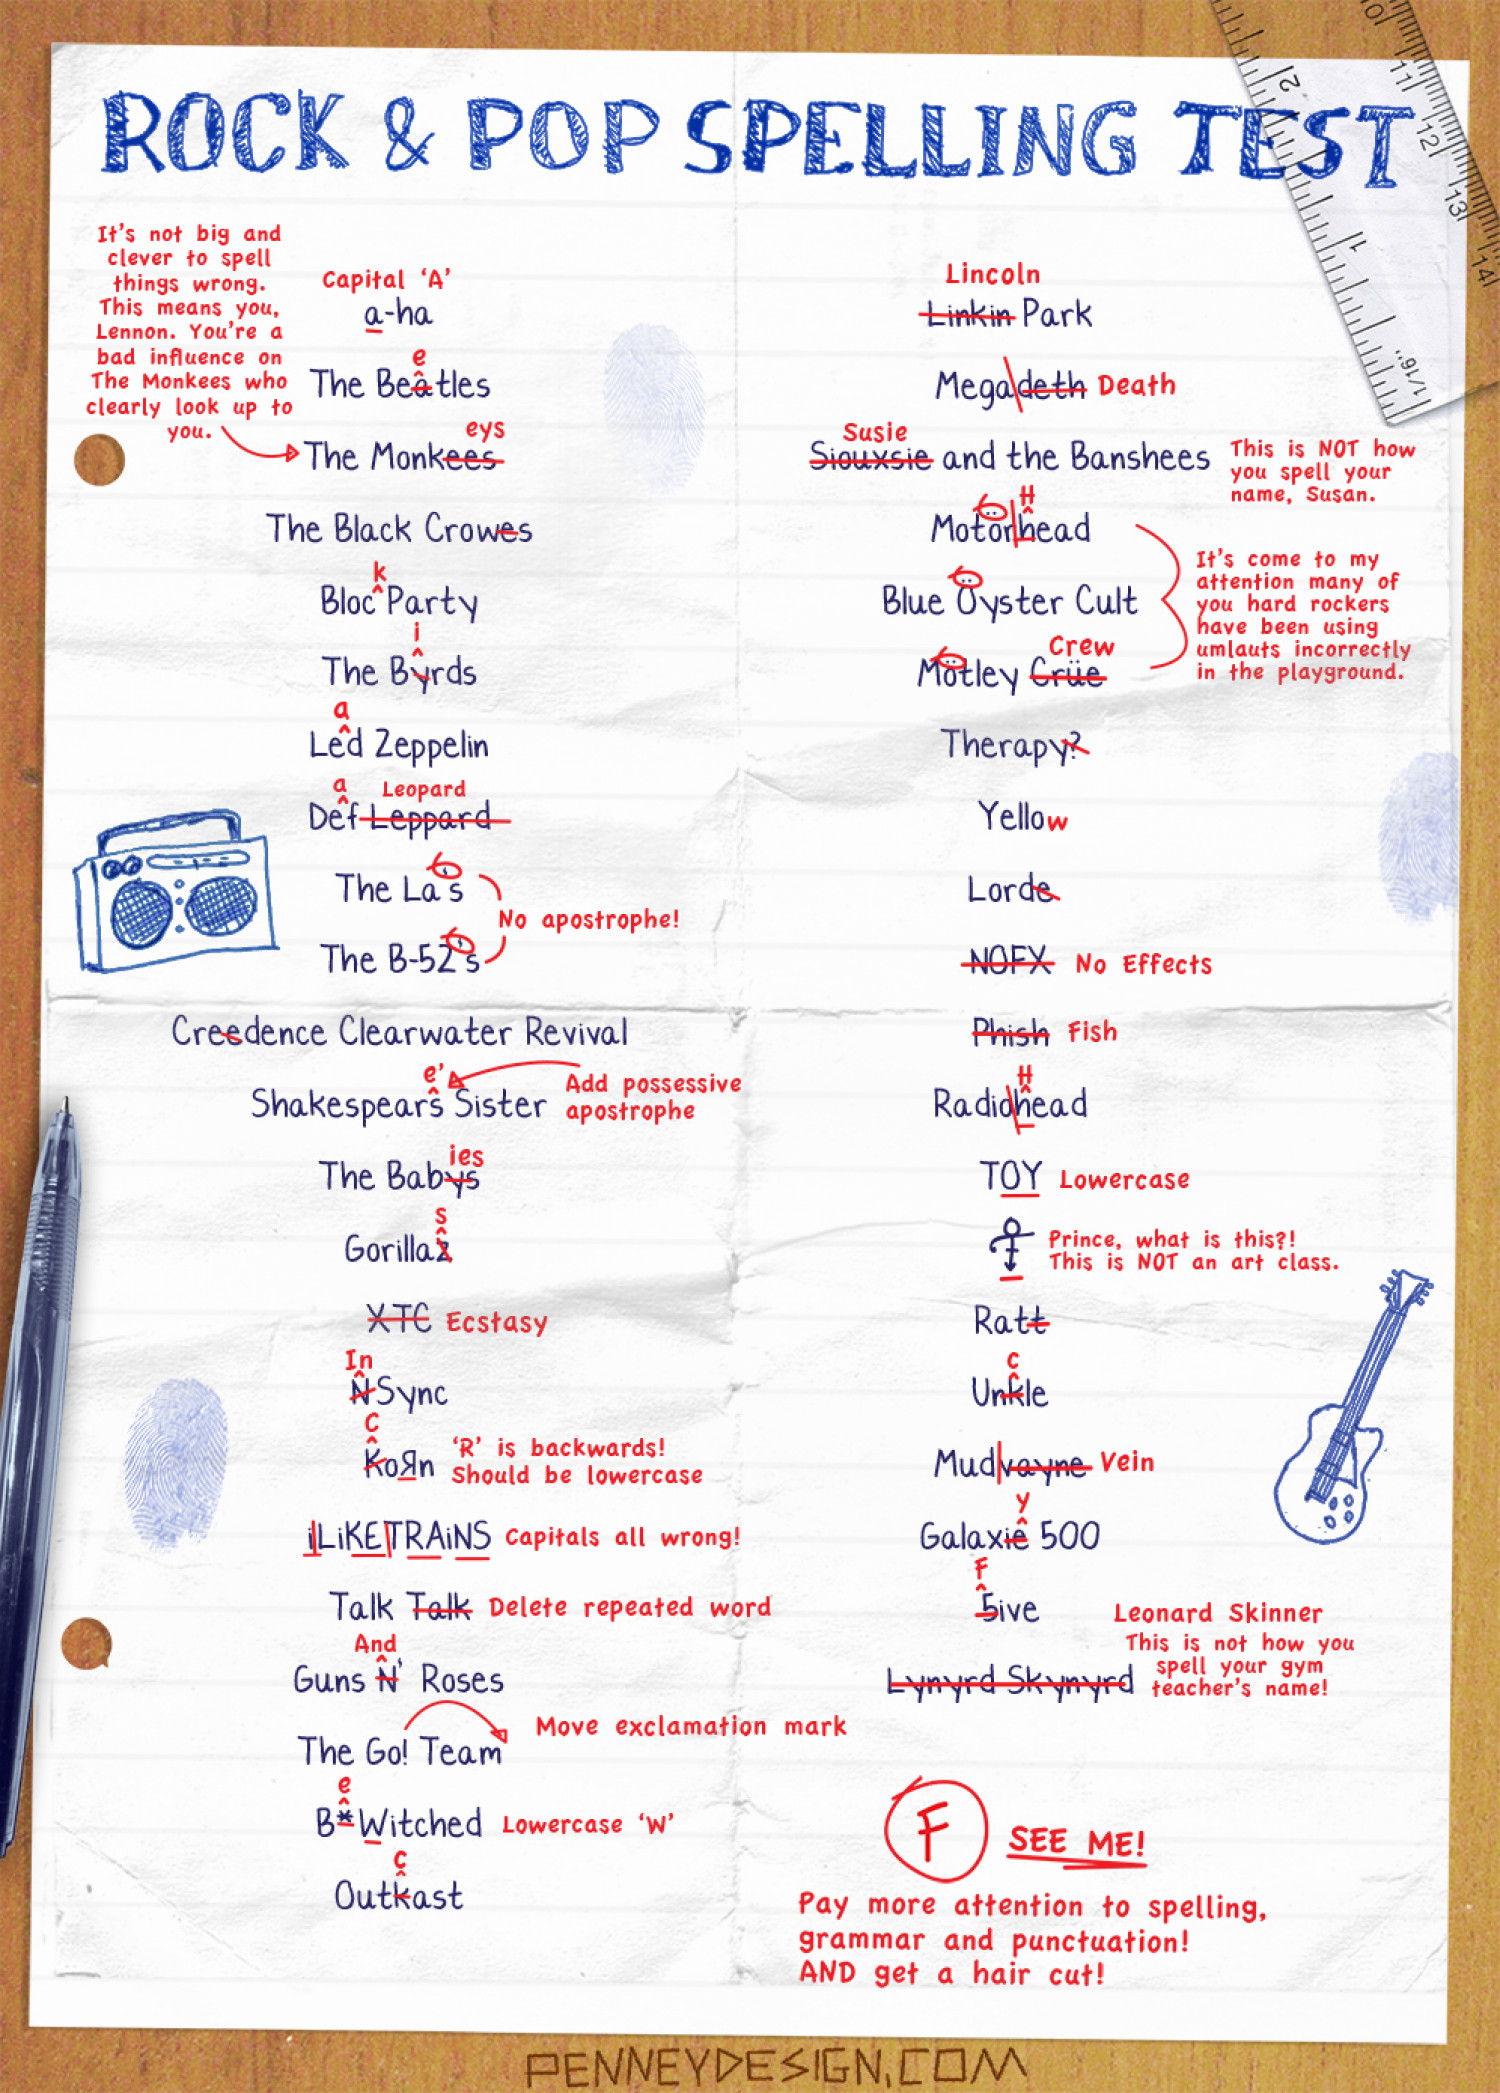 Rock & Roll Spelling Test Infographic